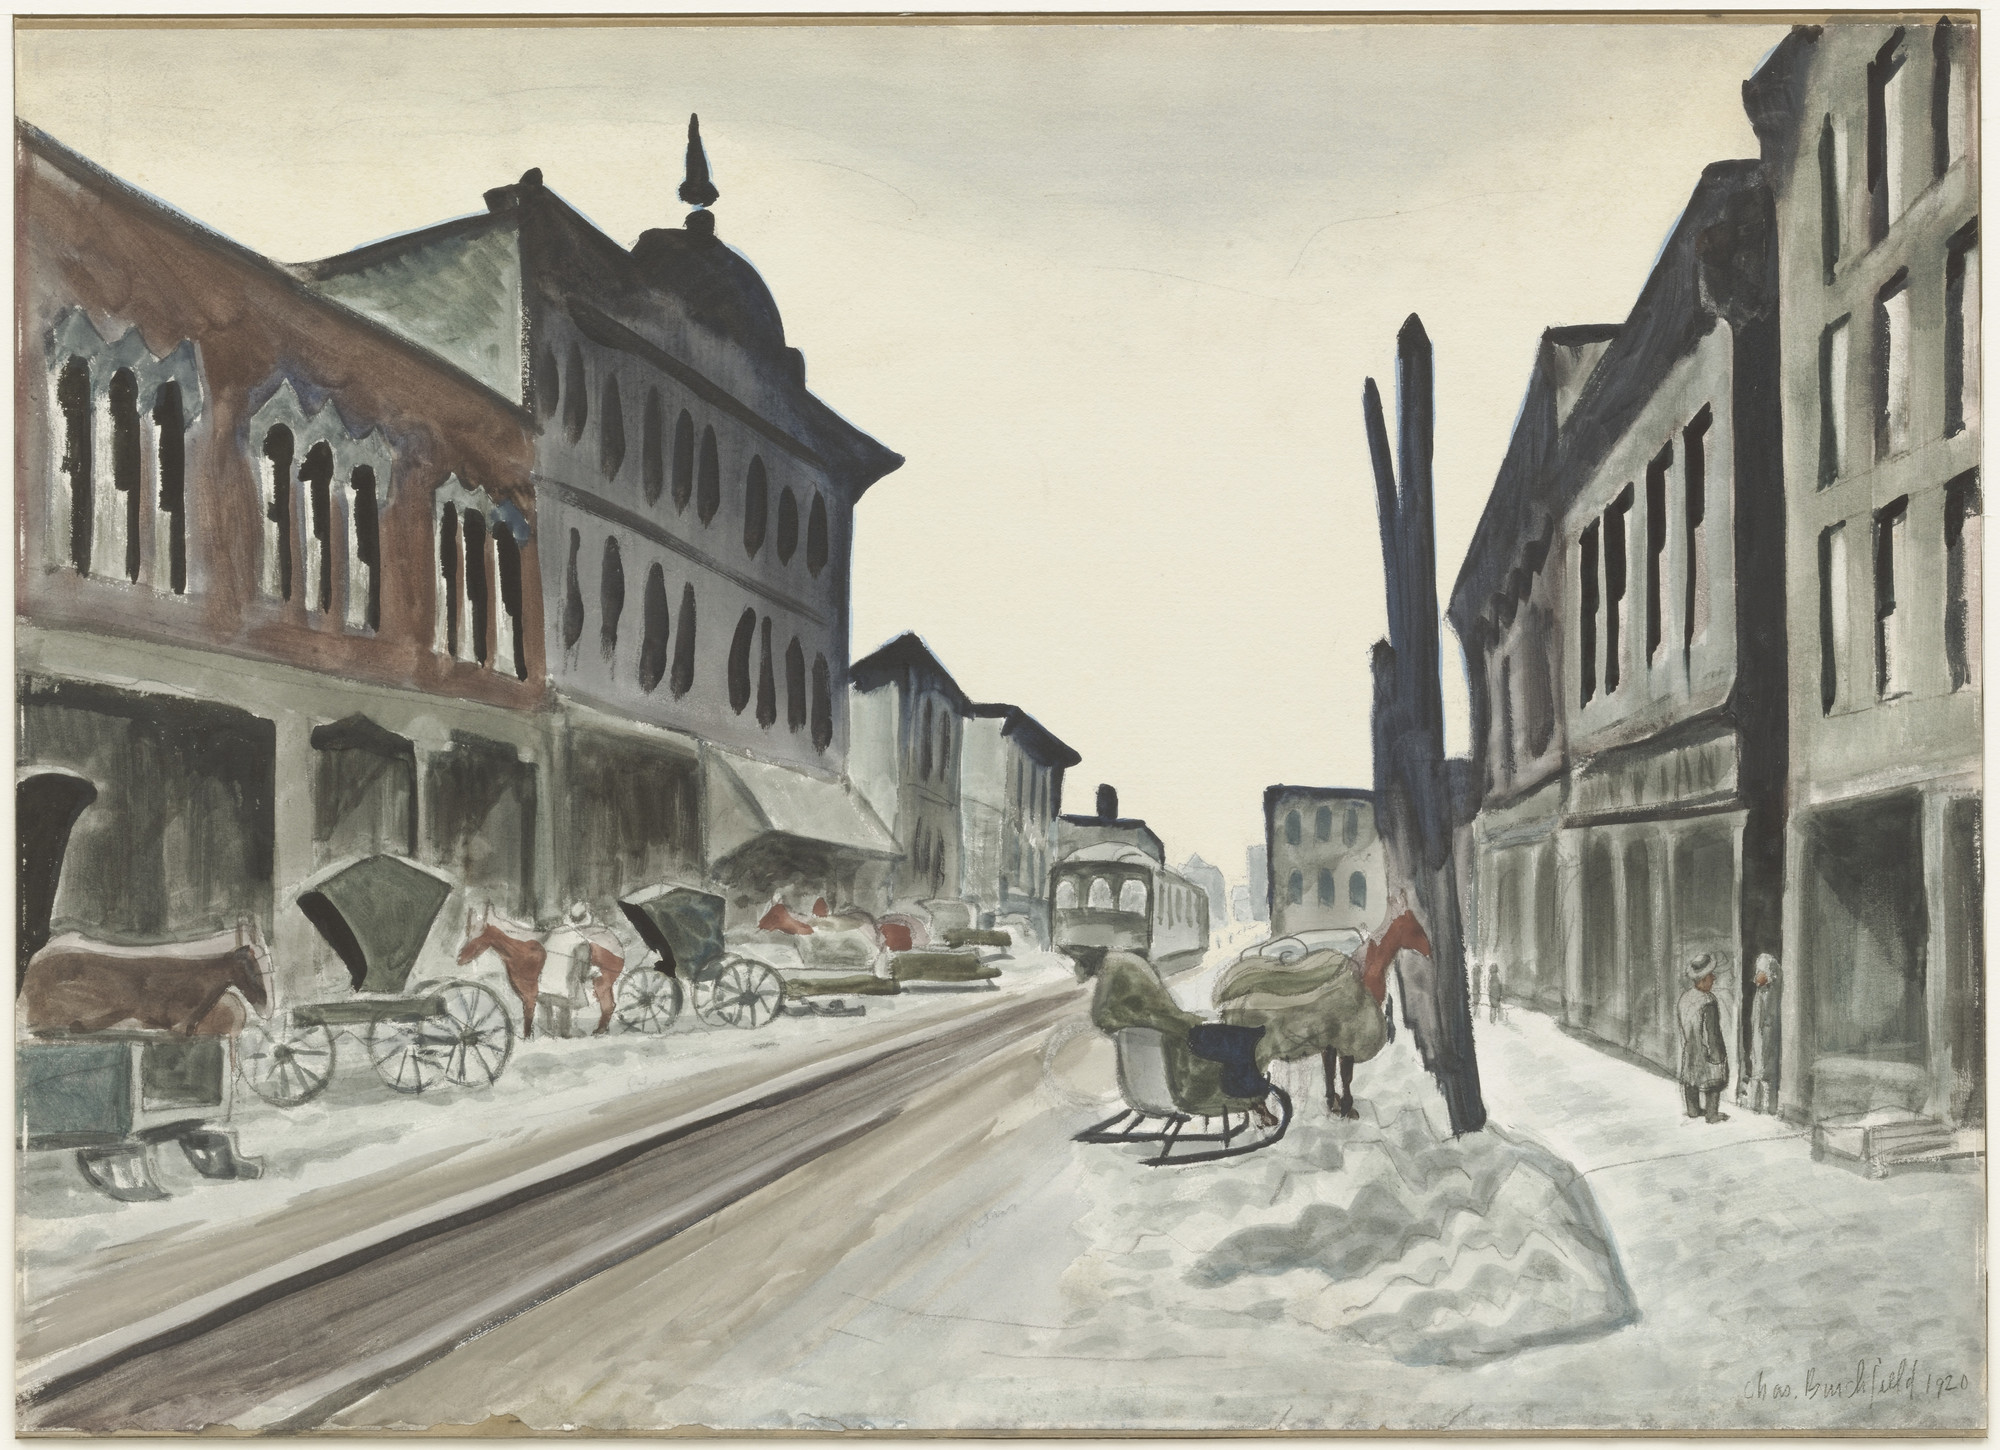 Charles Burchfield. The Interurban Line. 1920